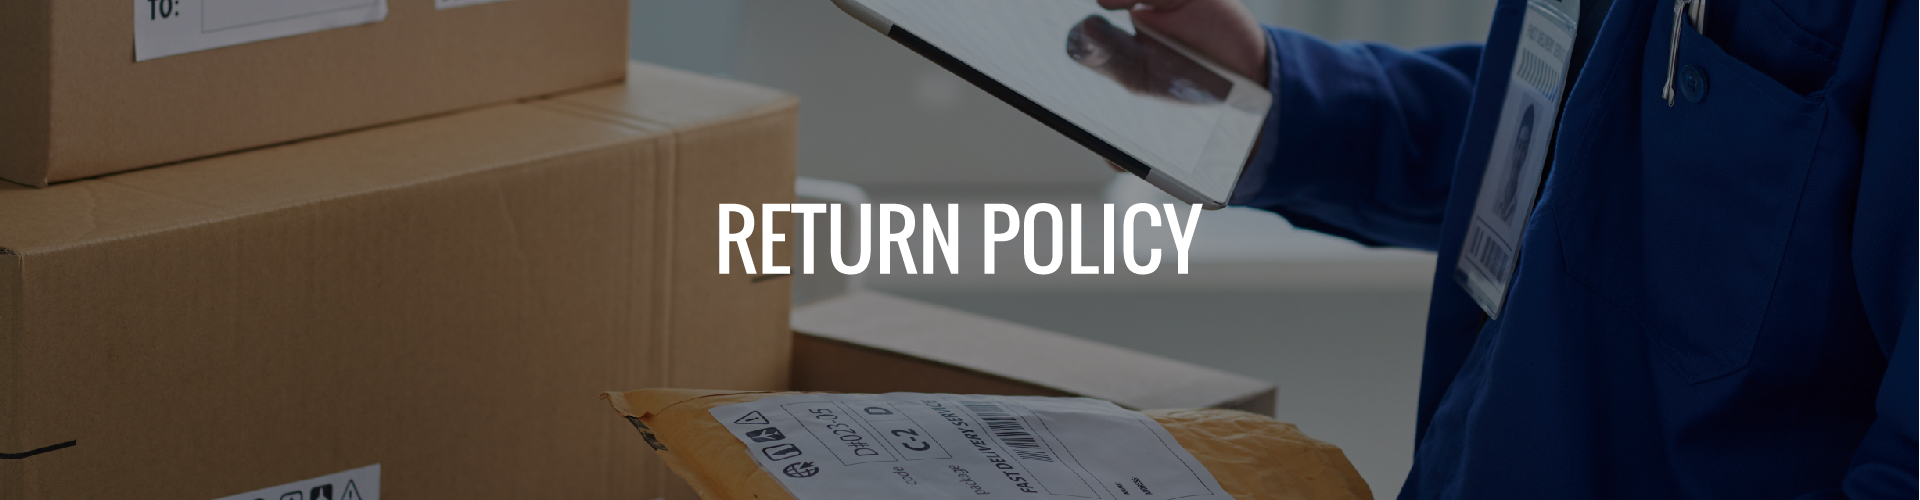 shipping_policy_privacy_policy_nhancedcbd